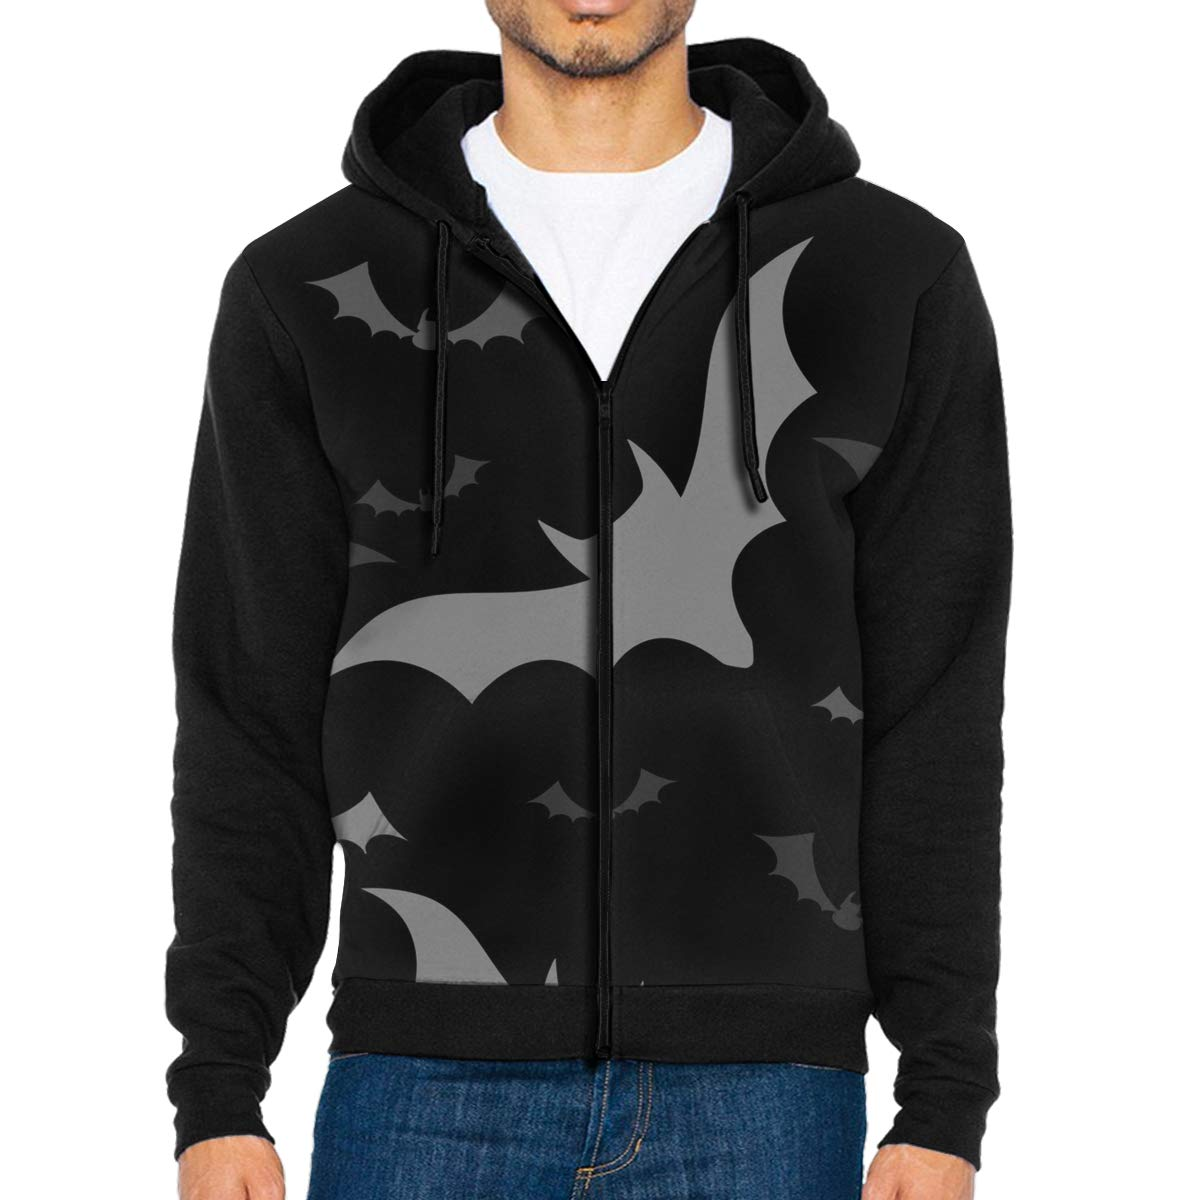 MHBGMYES Flying Grey Bats Lightweight Mans Jacket with Hood Long Sleeved Zippered Outwear